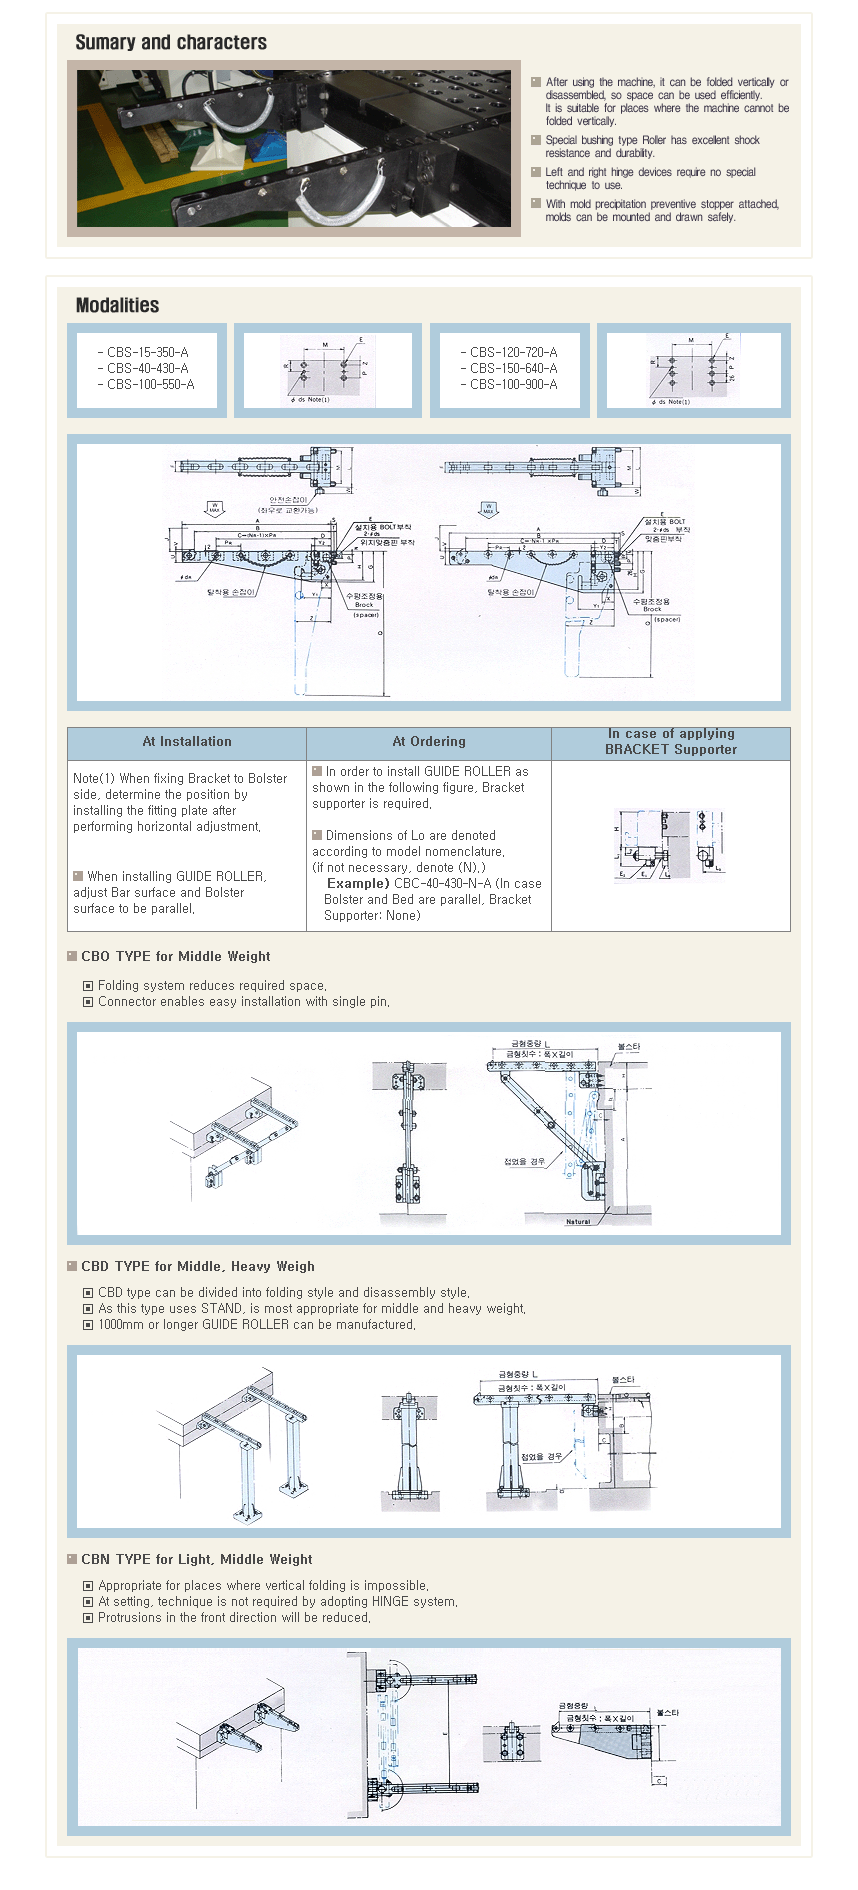 Taedo System Guide Roller